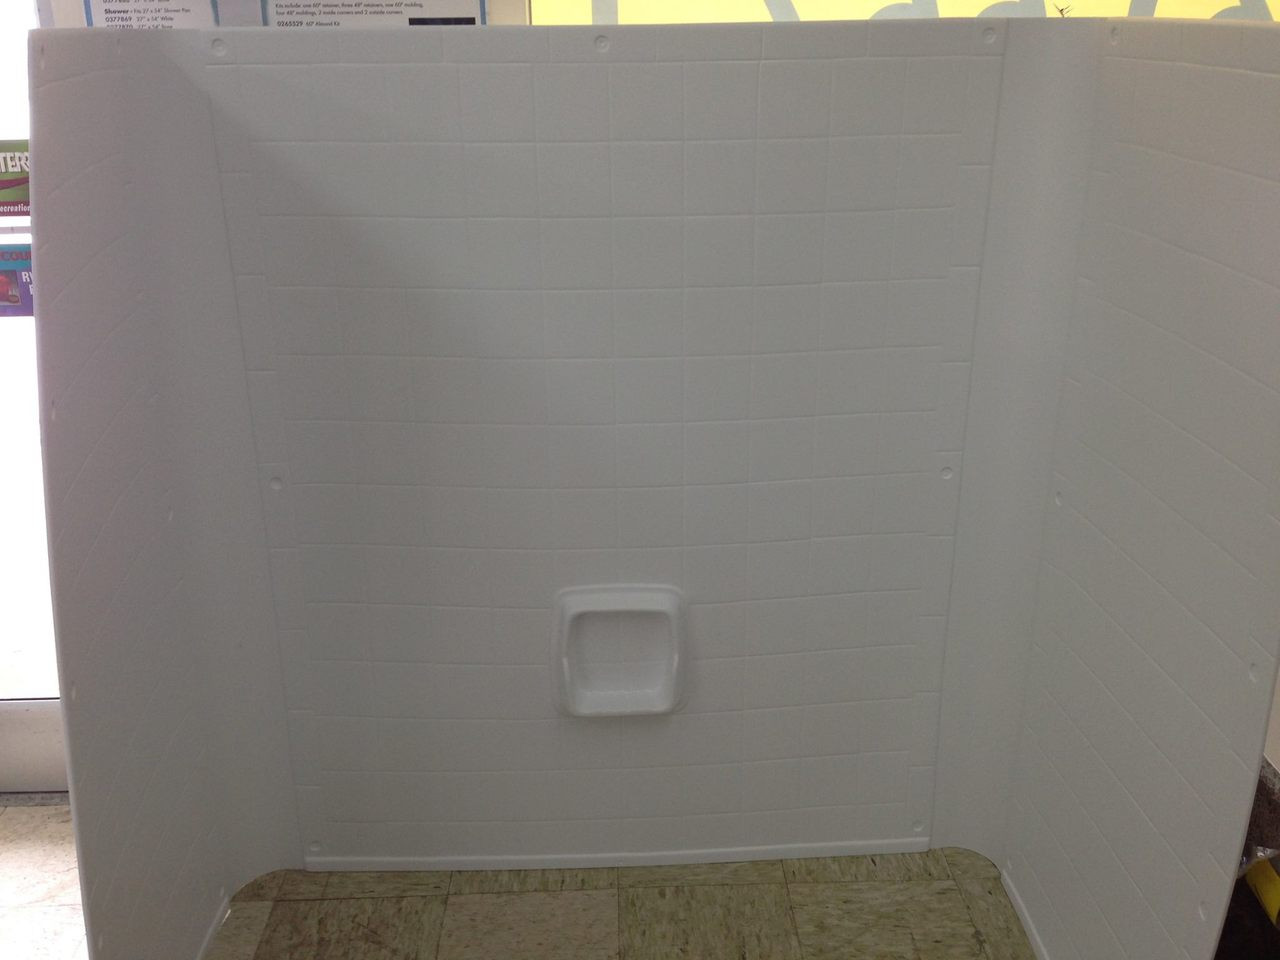 mobile home one piece surround white for 27x54 bath tub, mobile home